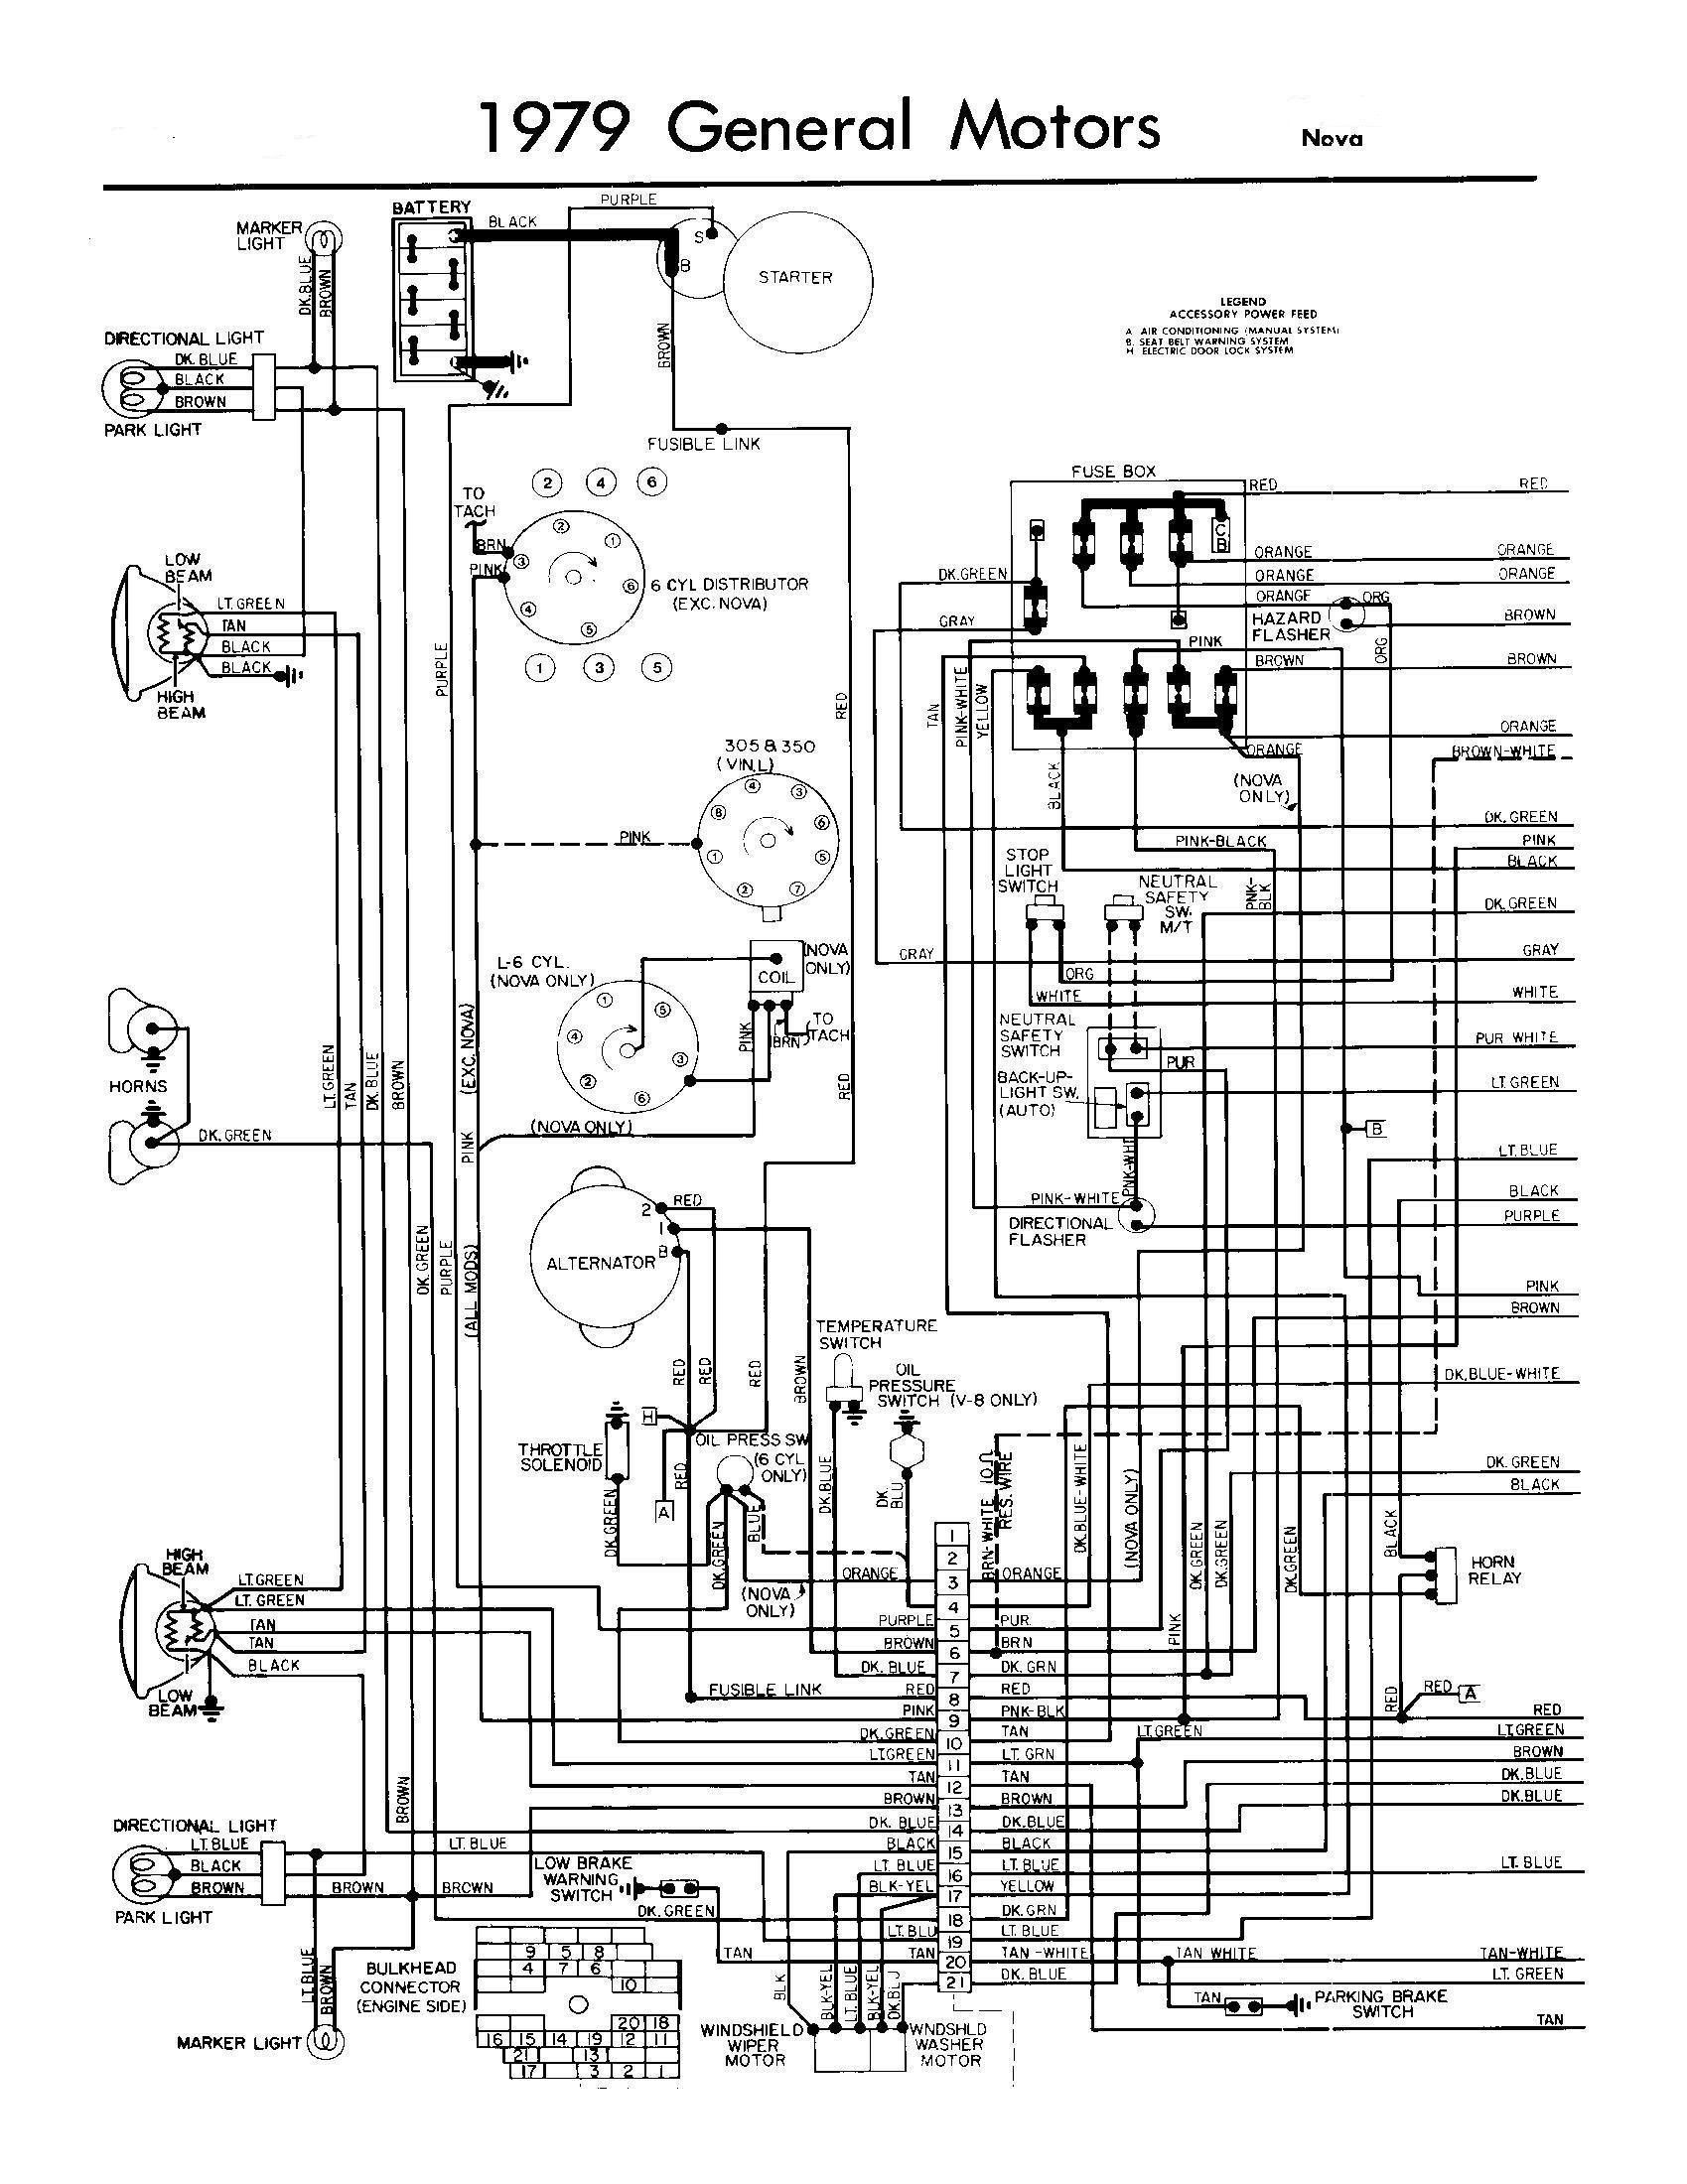 New R33 Alternator Wiring Diagram Diagrams Digramssample Diagramimages Chevy Trucks 1979 Chevy Truck 79 Chevy Truck